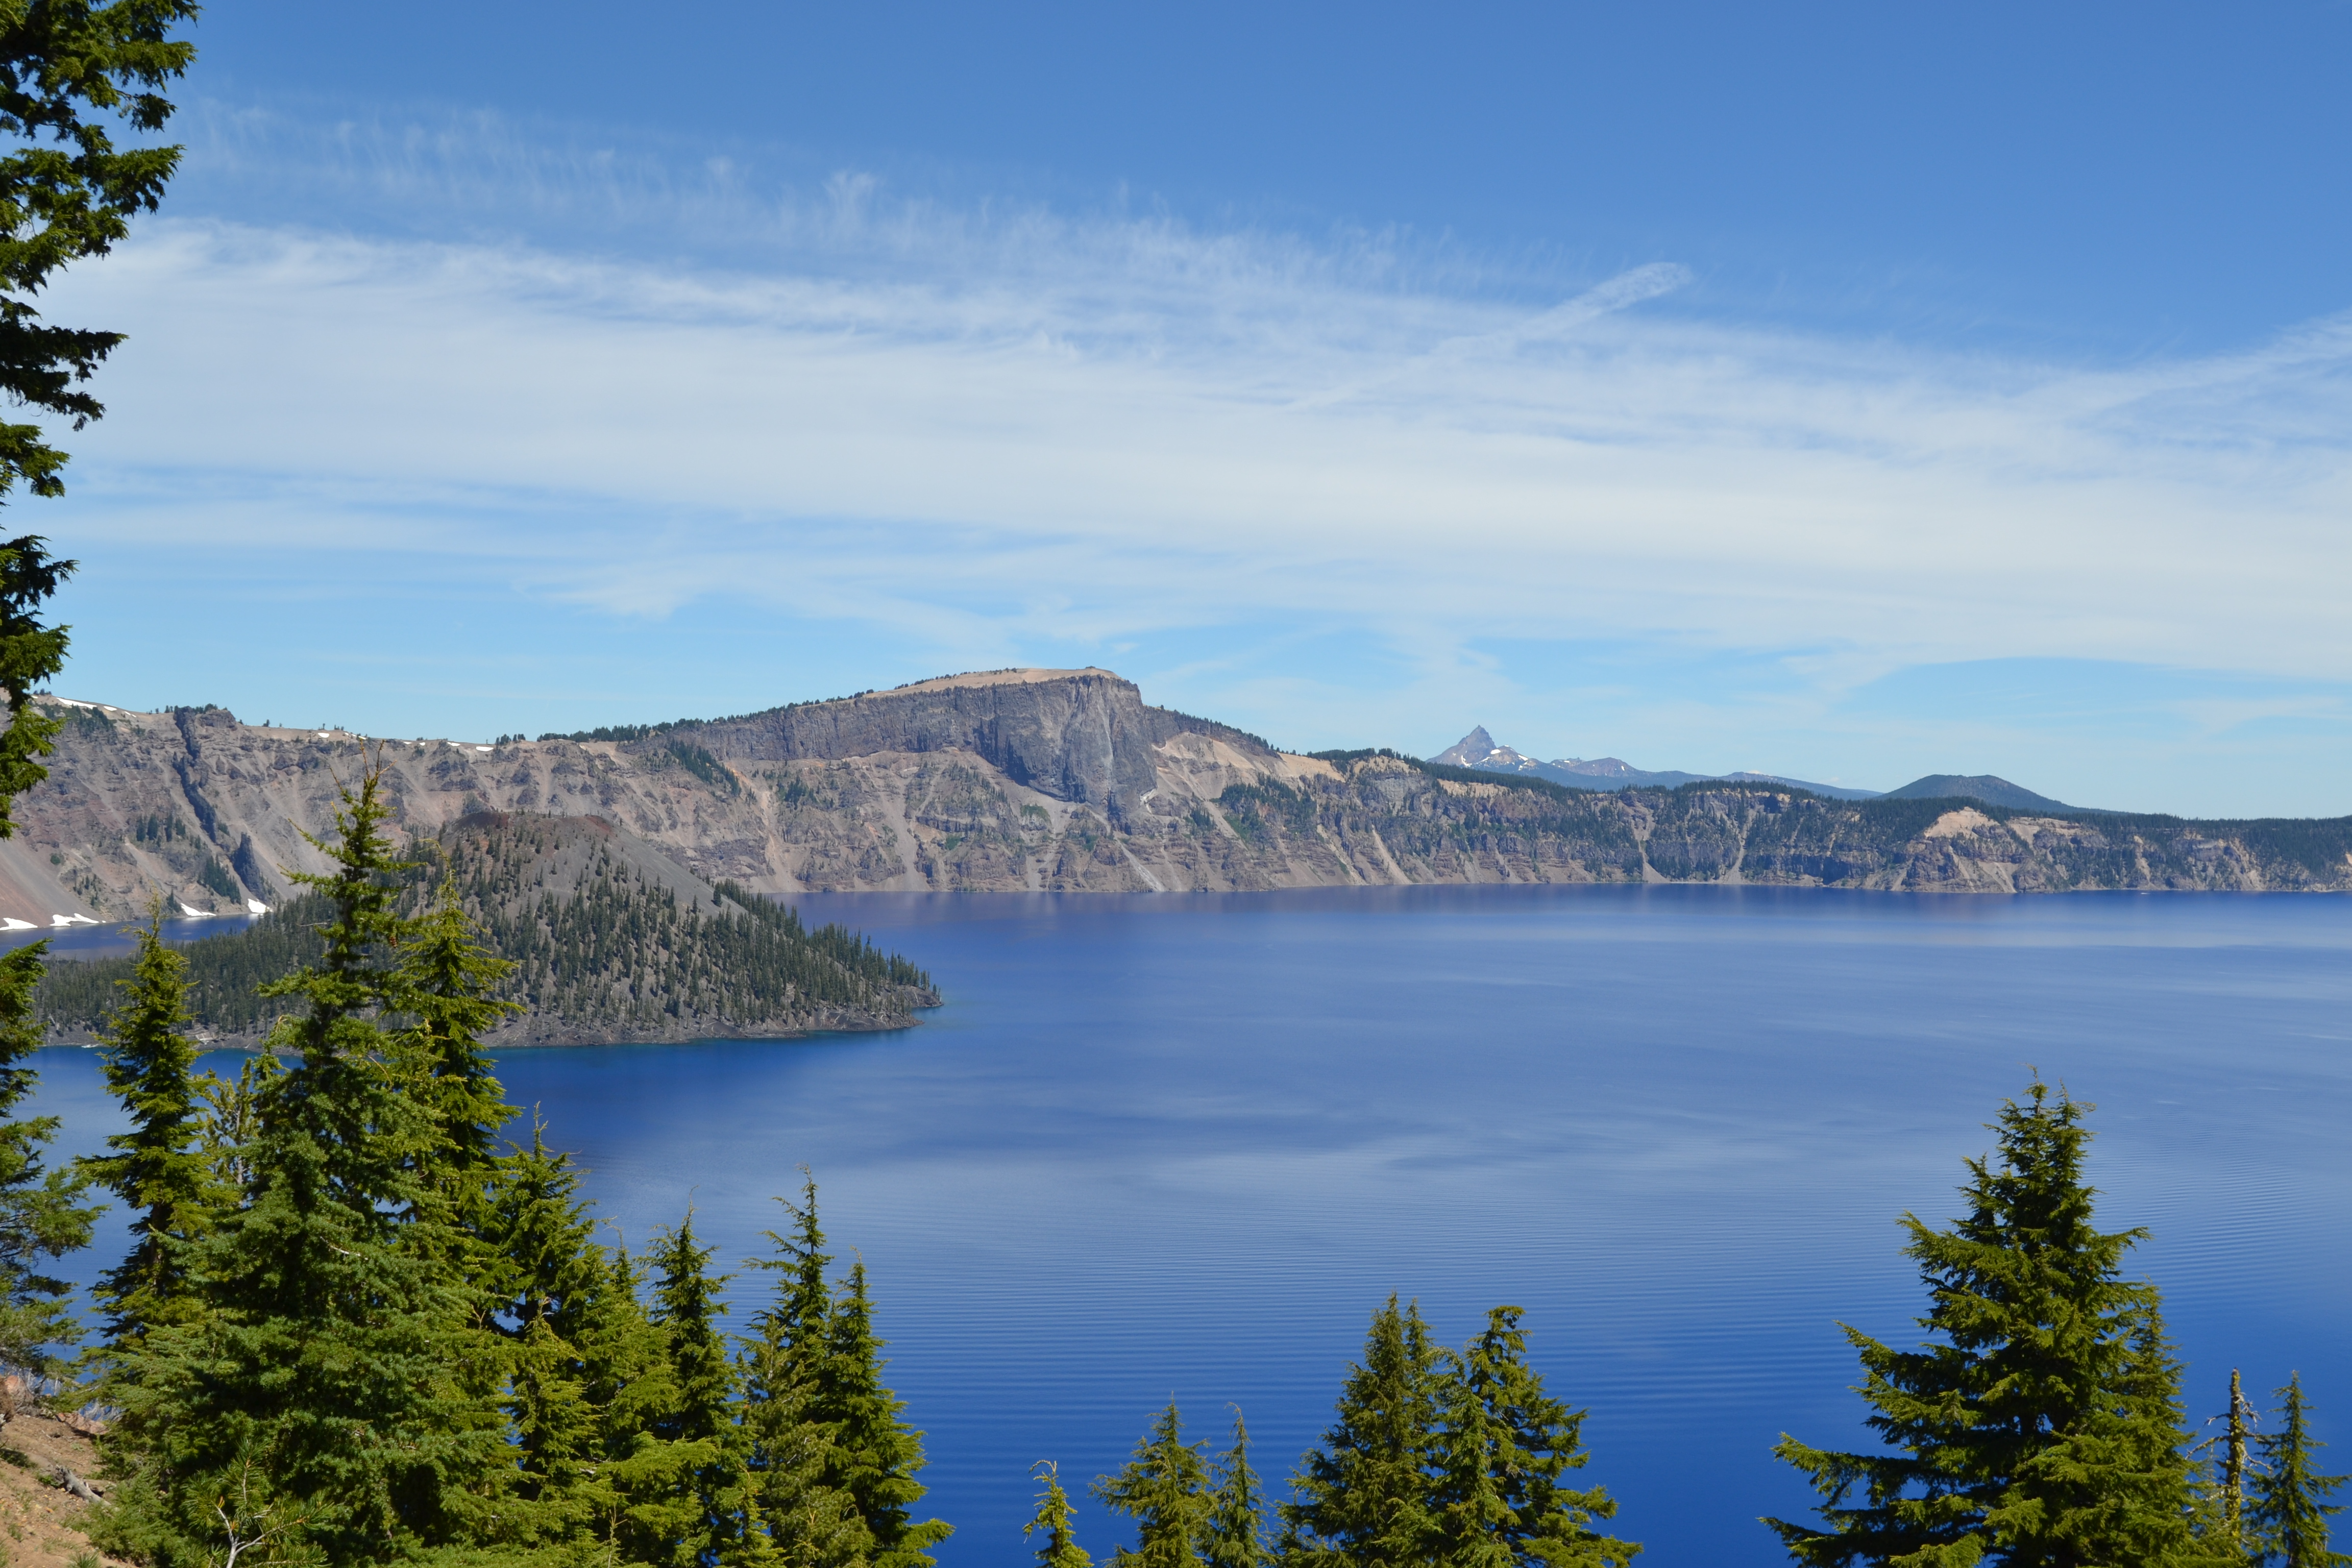 620a1b454b5 Frequently Asked Questions About Crater Lake National Park | Eugene ...